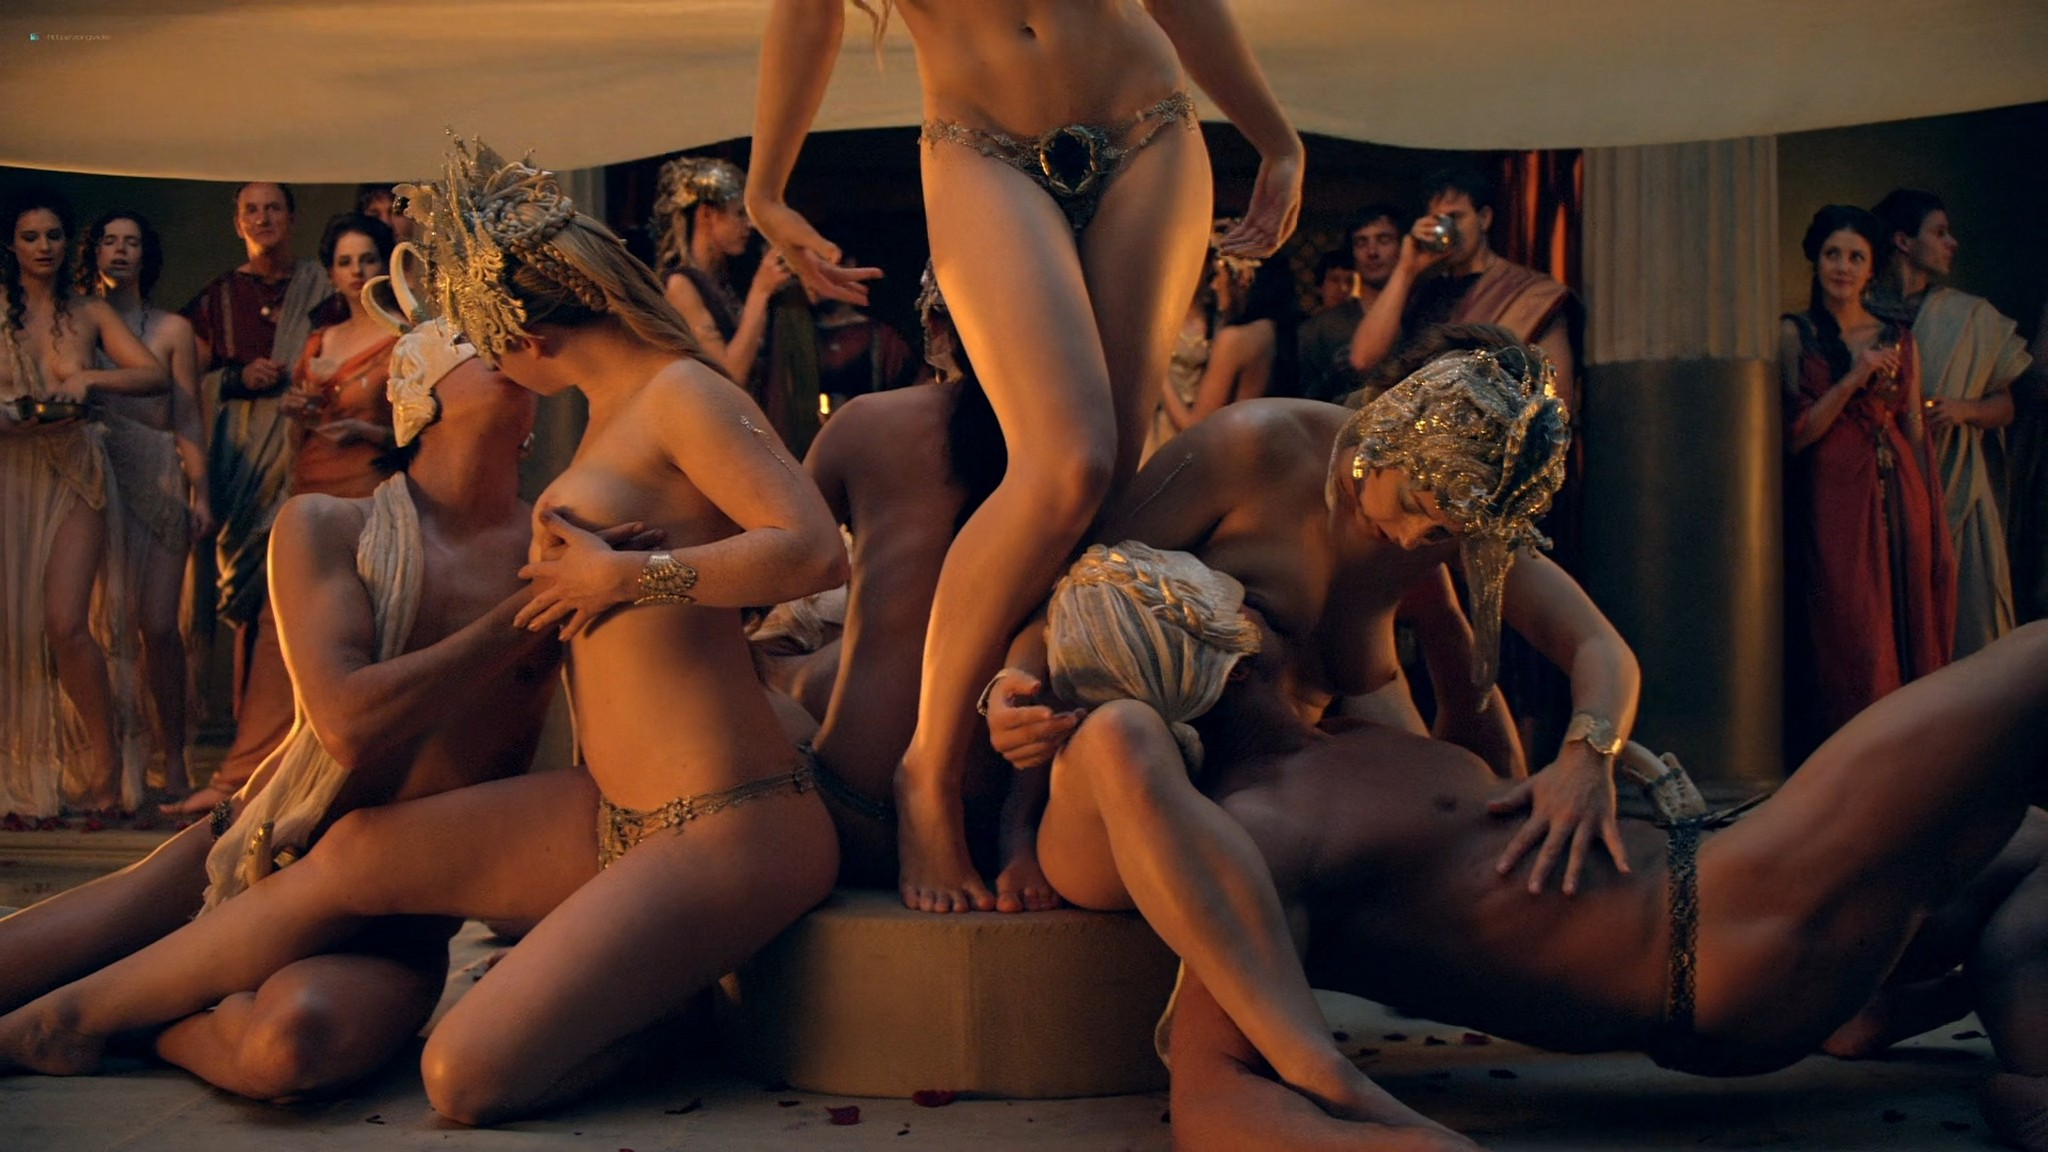 Viva Bianca nude Lucy Lawless nude sex others nude - Spartacus - Vengeance (2012) e4 1080p BluRay (12)